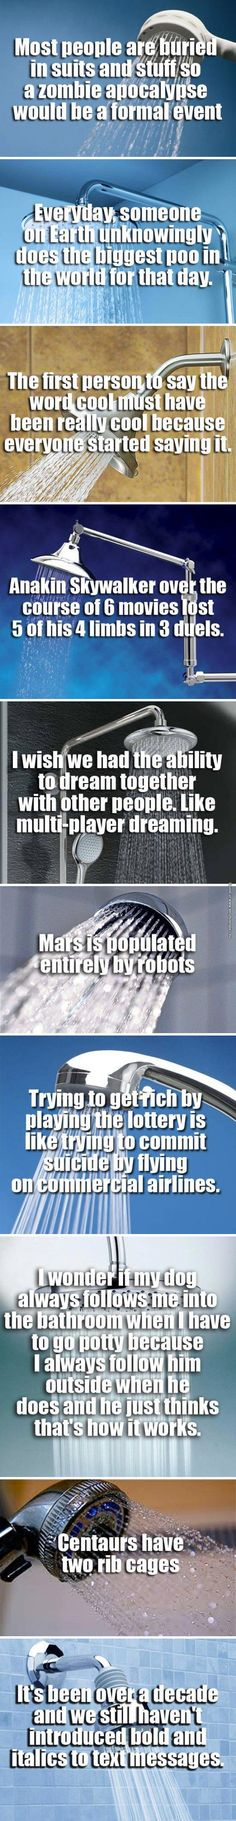 10 interesting (and pointless) shower thoughts